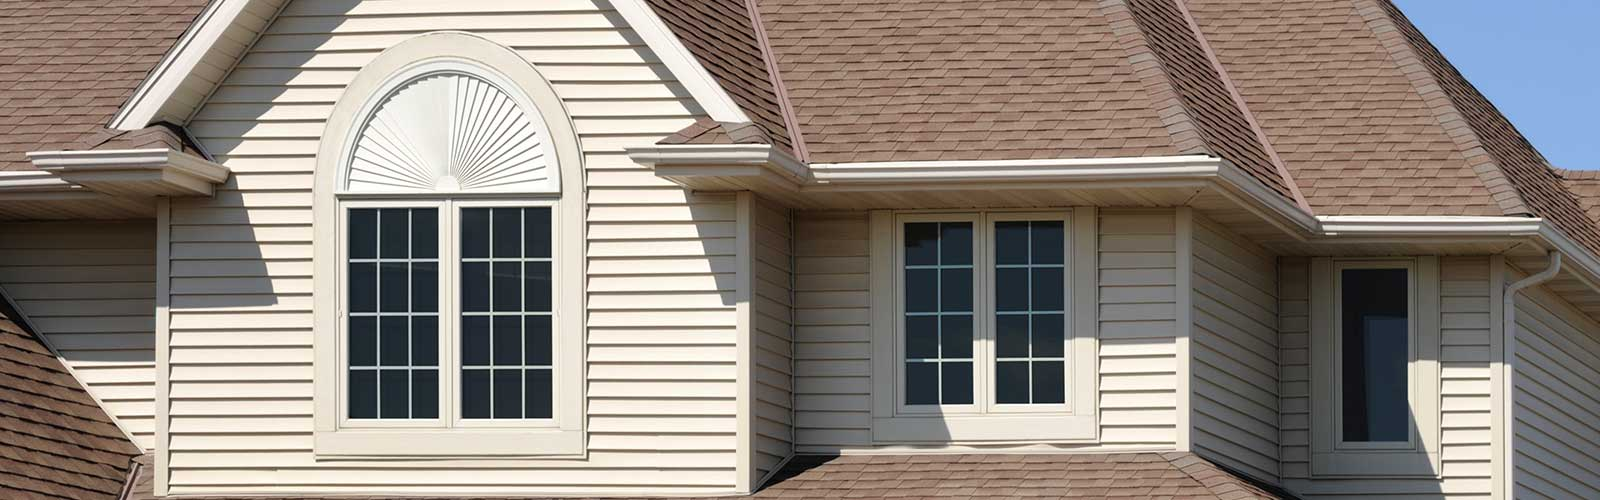 Perfect Brown Home with Gabled Architectural Asphalt Roof and Vinyl Siding